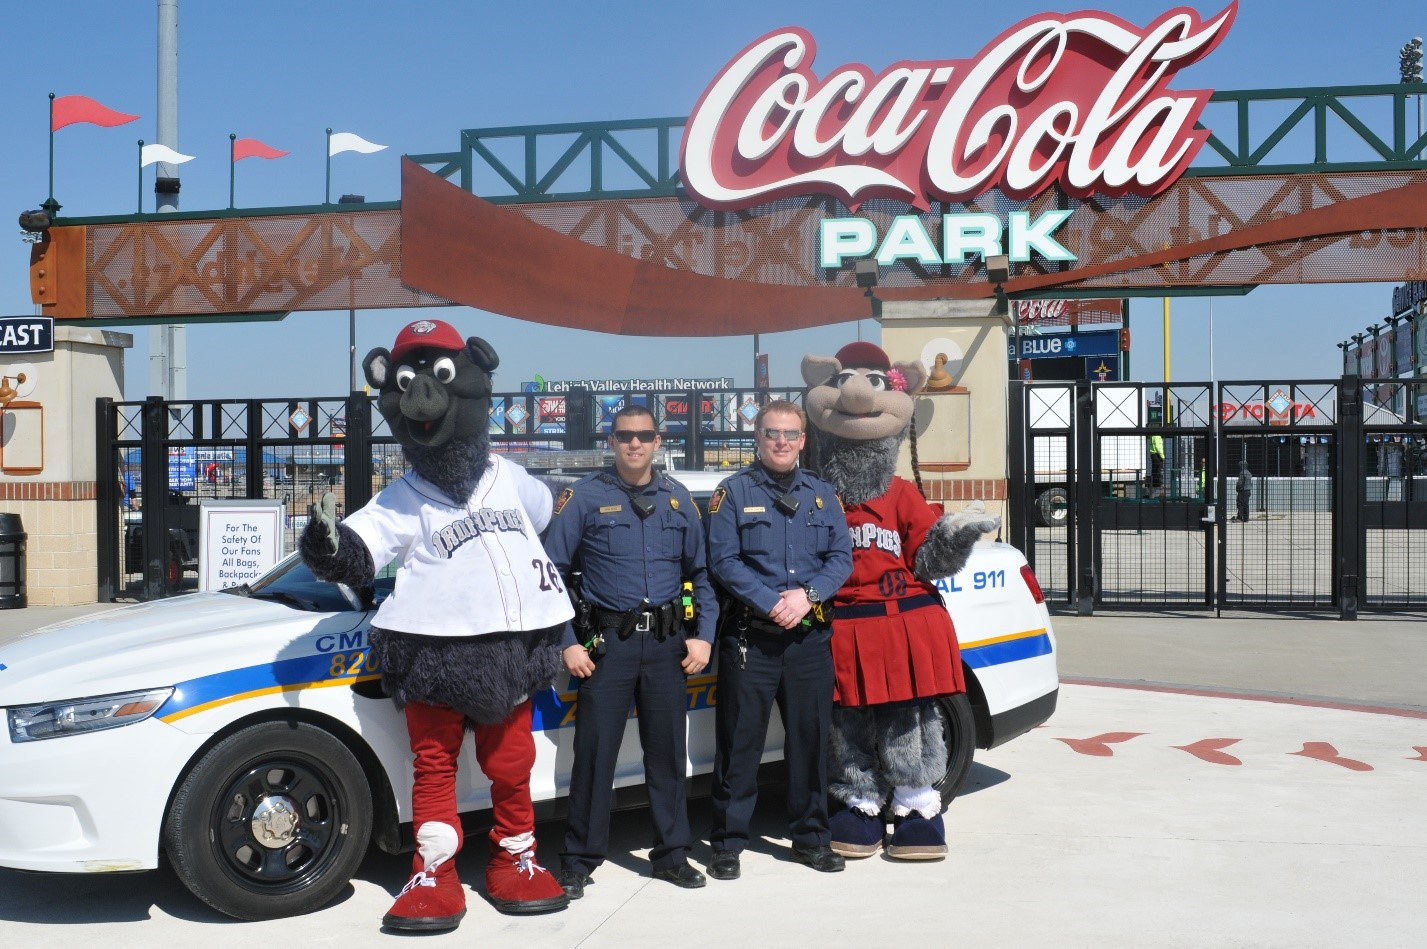 Ferous, Officer Perez, Officer Bowland, and FeFe outside CocaCola Park